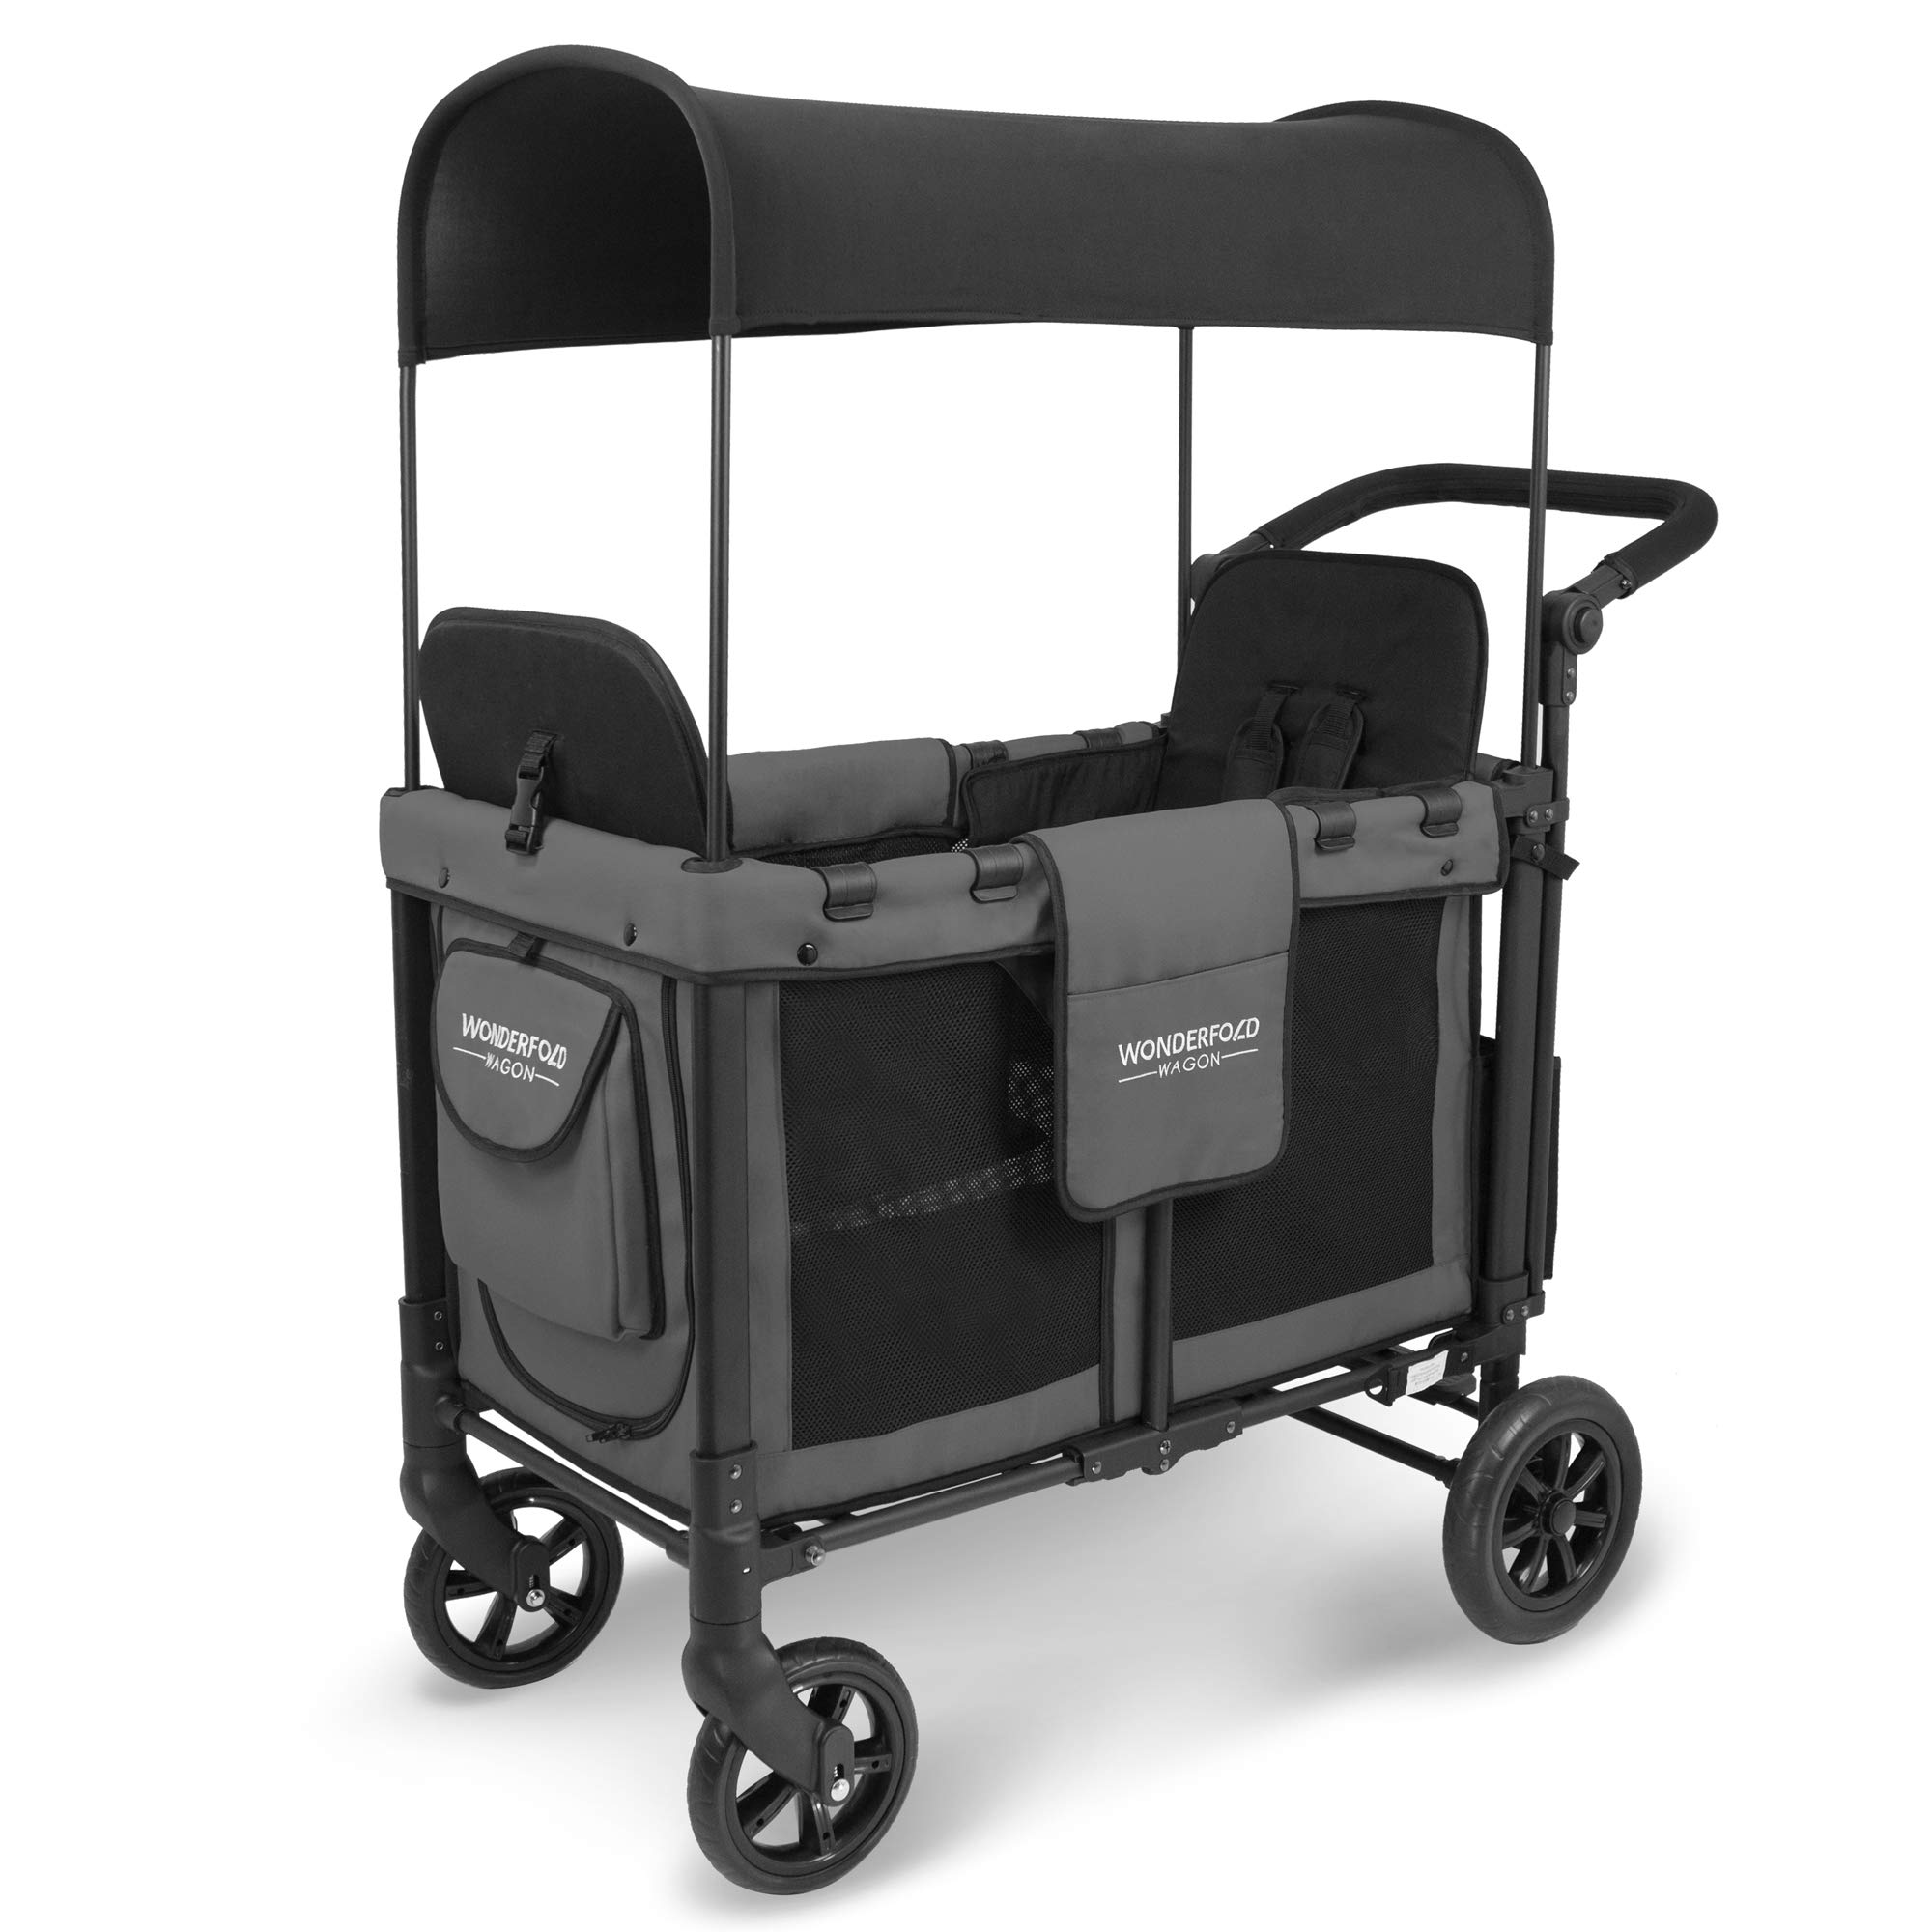 WonderFold Multi-Function Push 2 Passenger Double Folding Stroller, Adjustable Canopy & Removable Chair Seat Up To 2 Toddlers (Charcoal Gray) by WonderFold (Image #1)